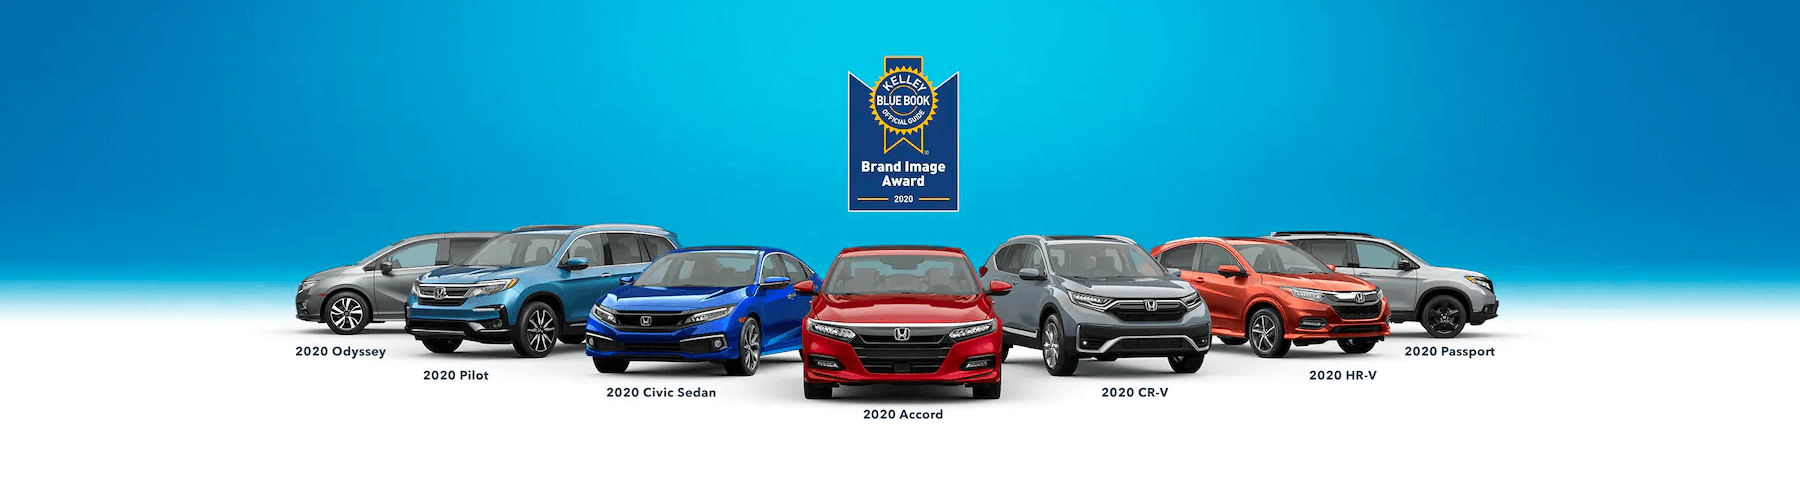 Honda Kelley Blue Book 2020 Brand Image Slider